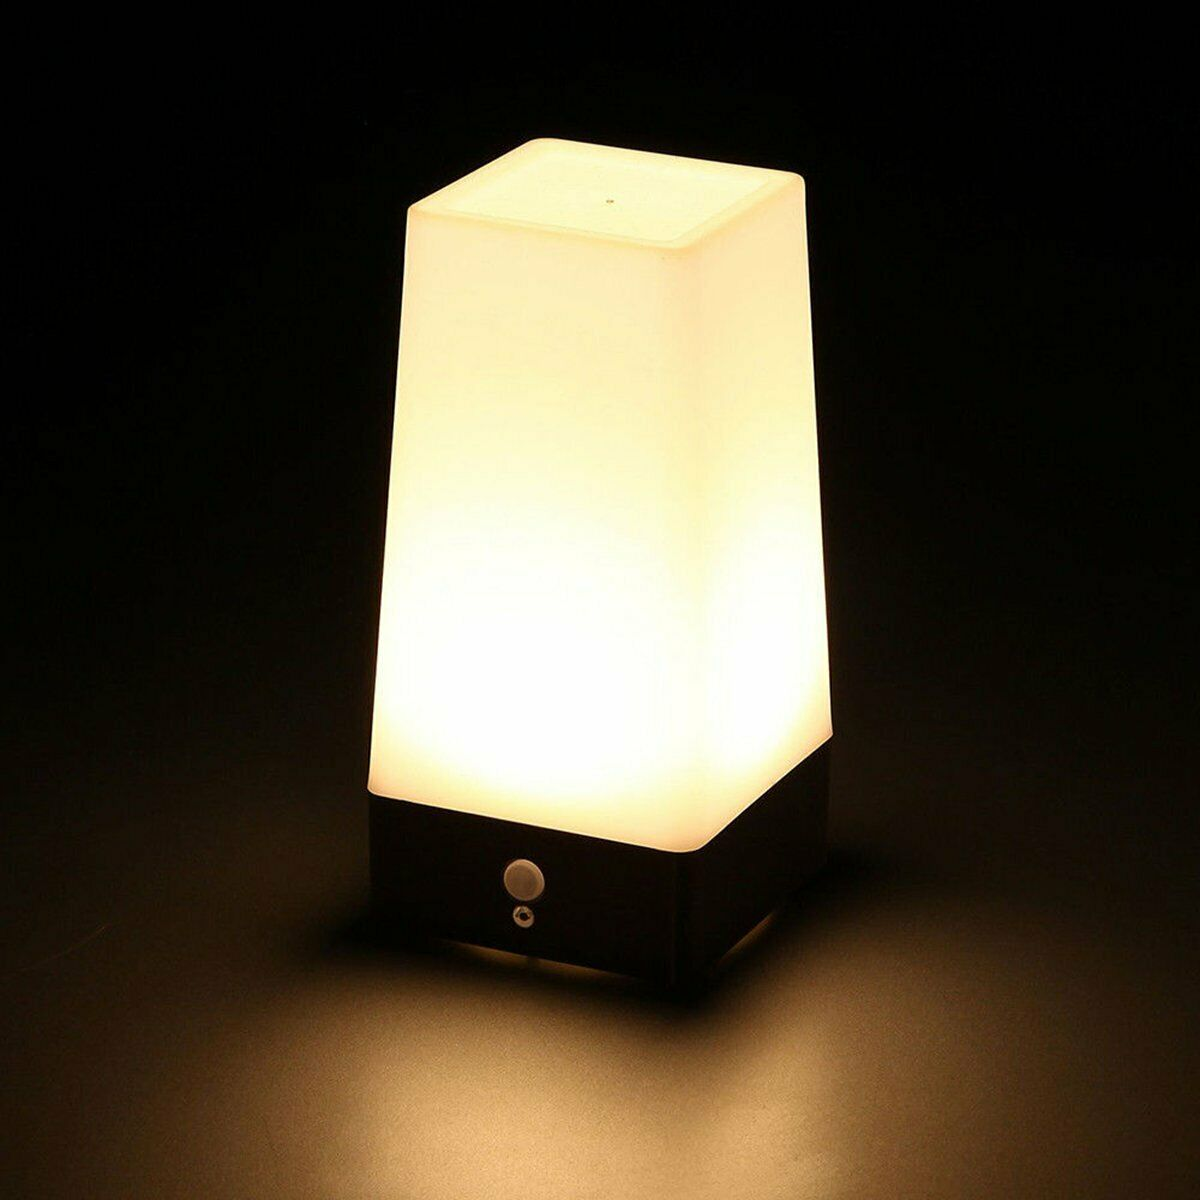 Wireless Pir Motion Sensor Light Sensor Led Night Light Battery